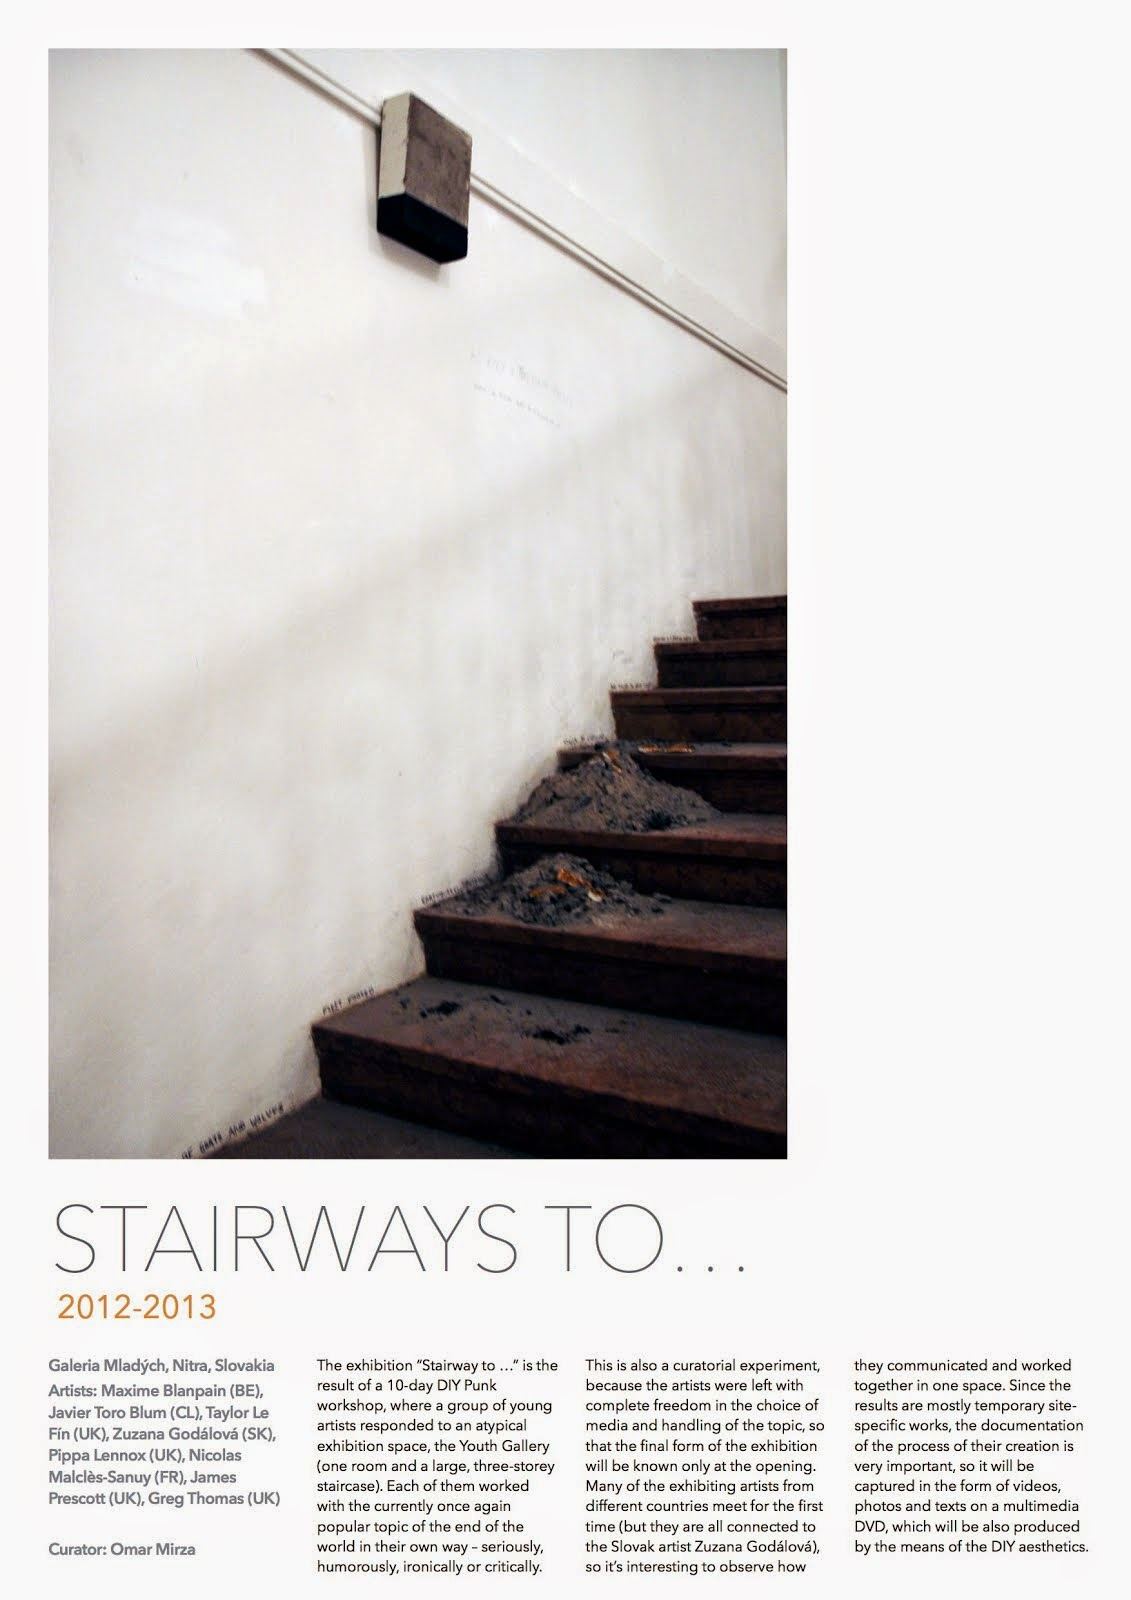 Stairways to...